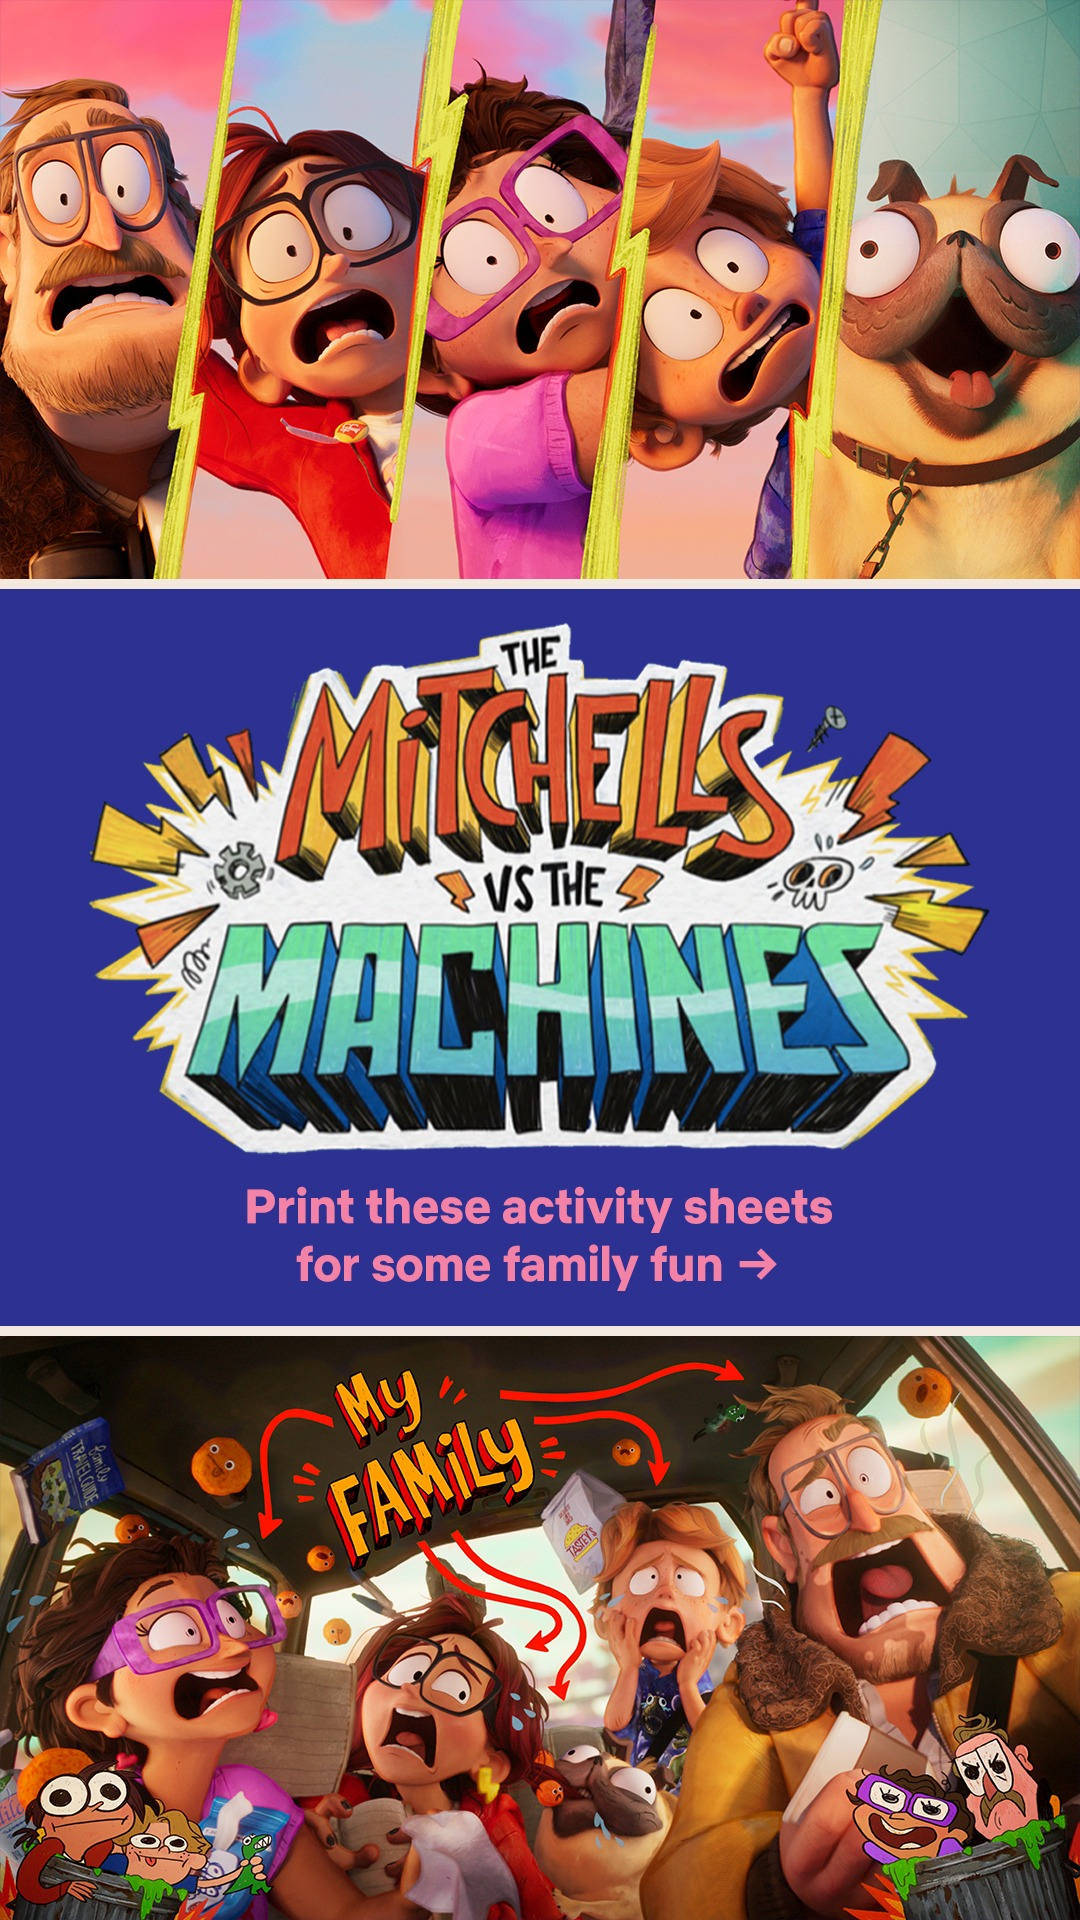 The Mitchells vs. The Machines Activity Sheets